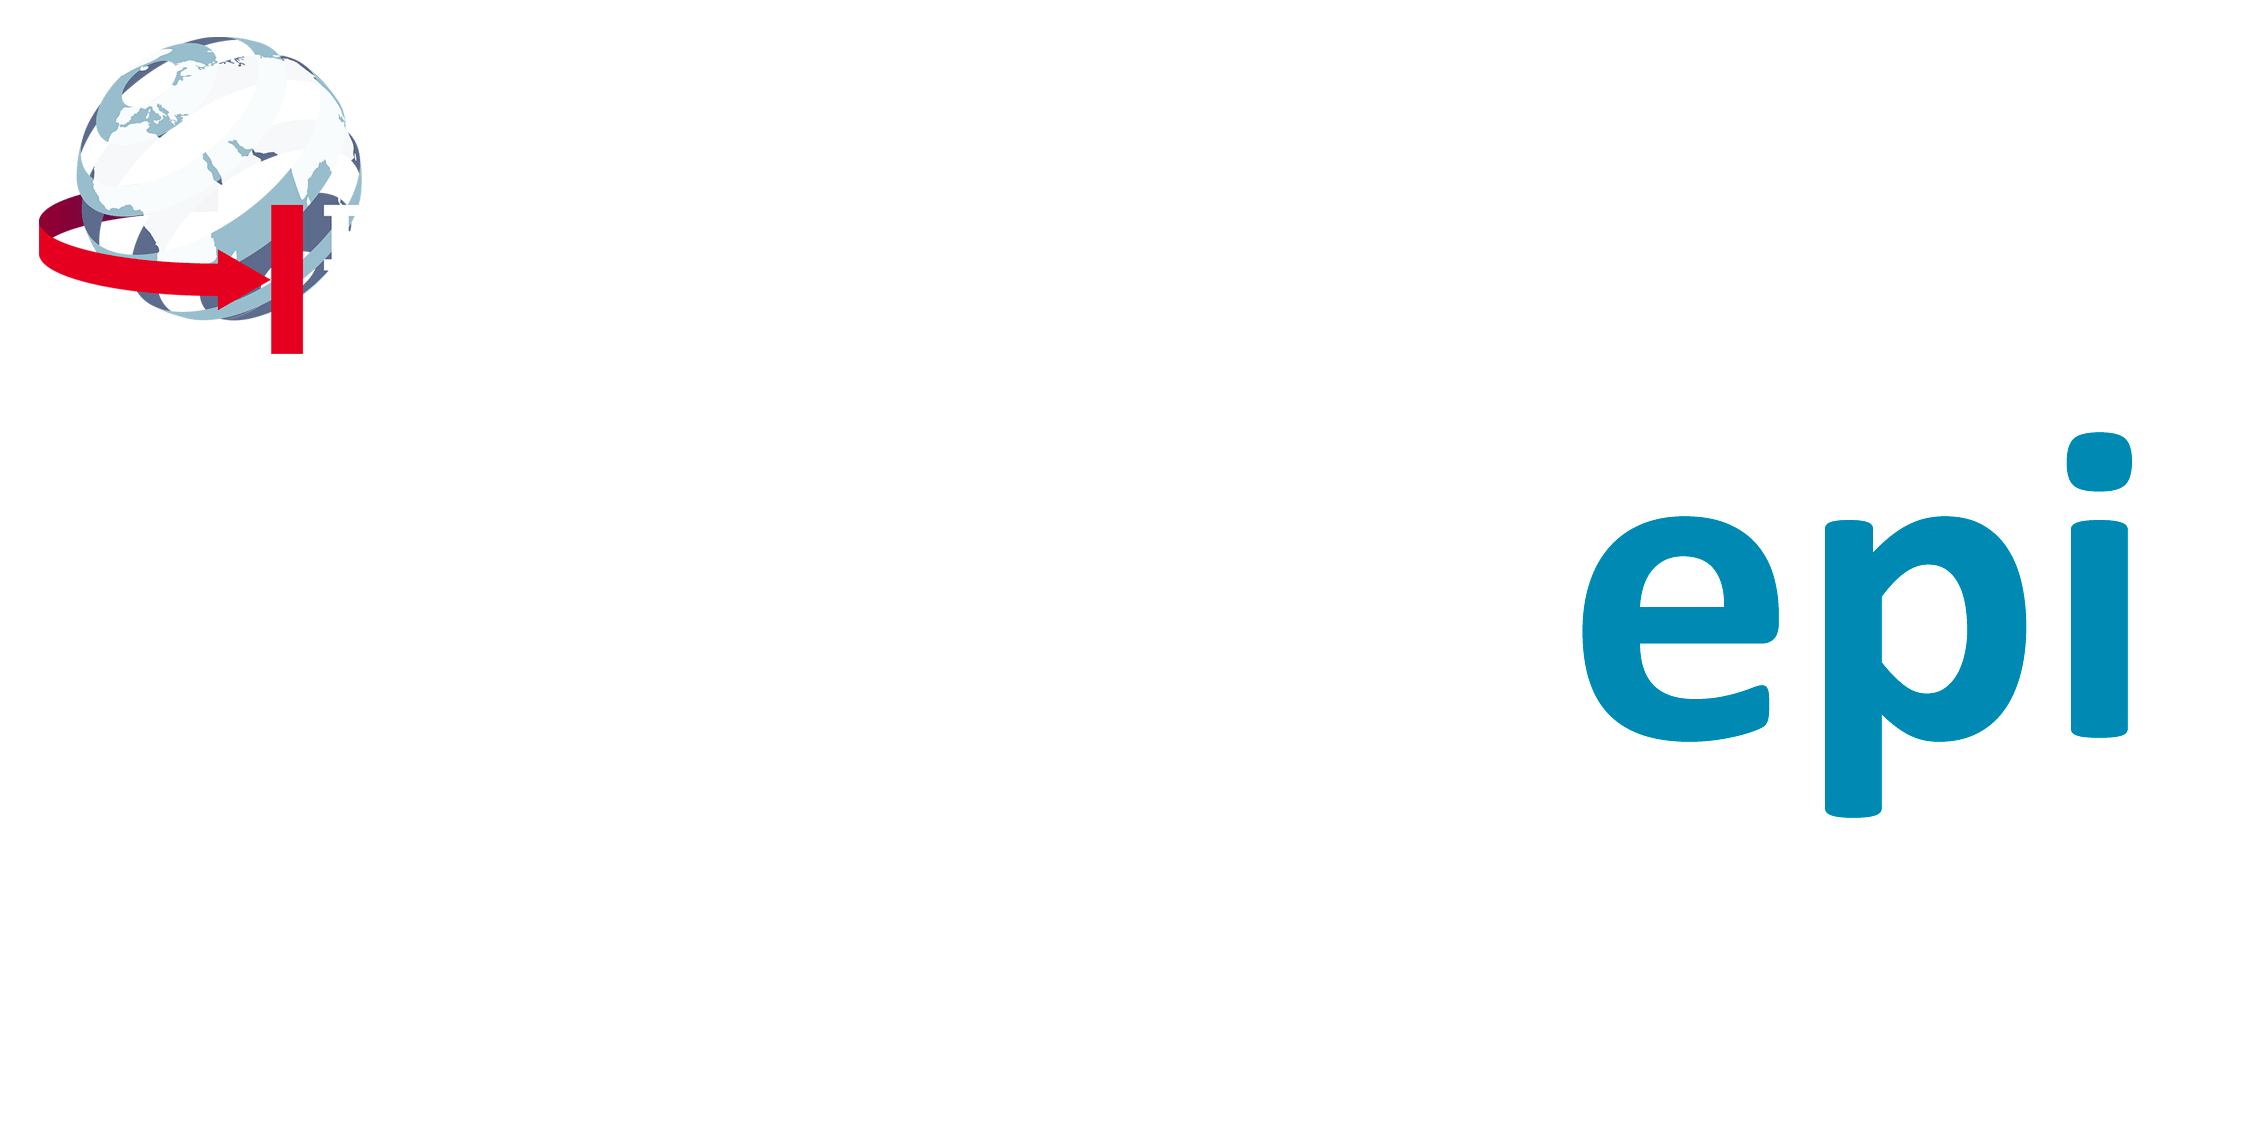 Teachepi A Website For Learning And Teaching Epidemiology